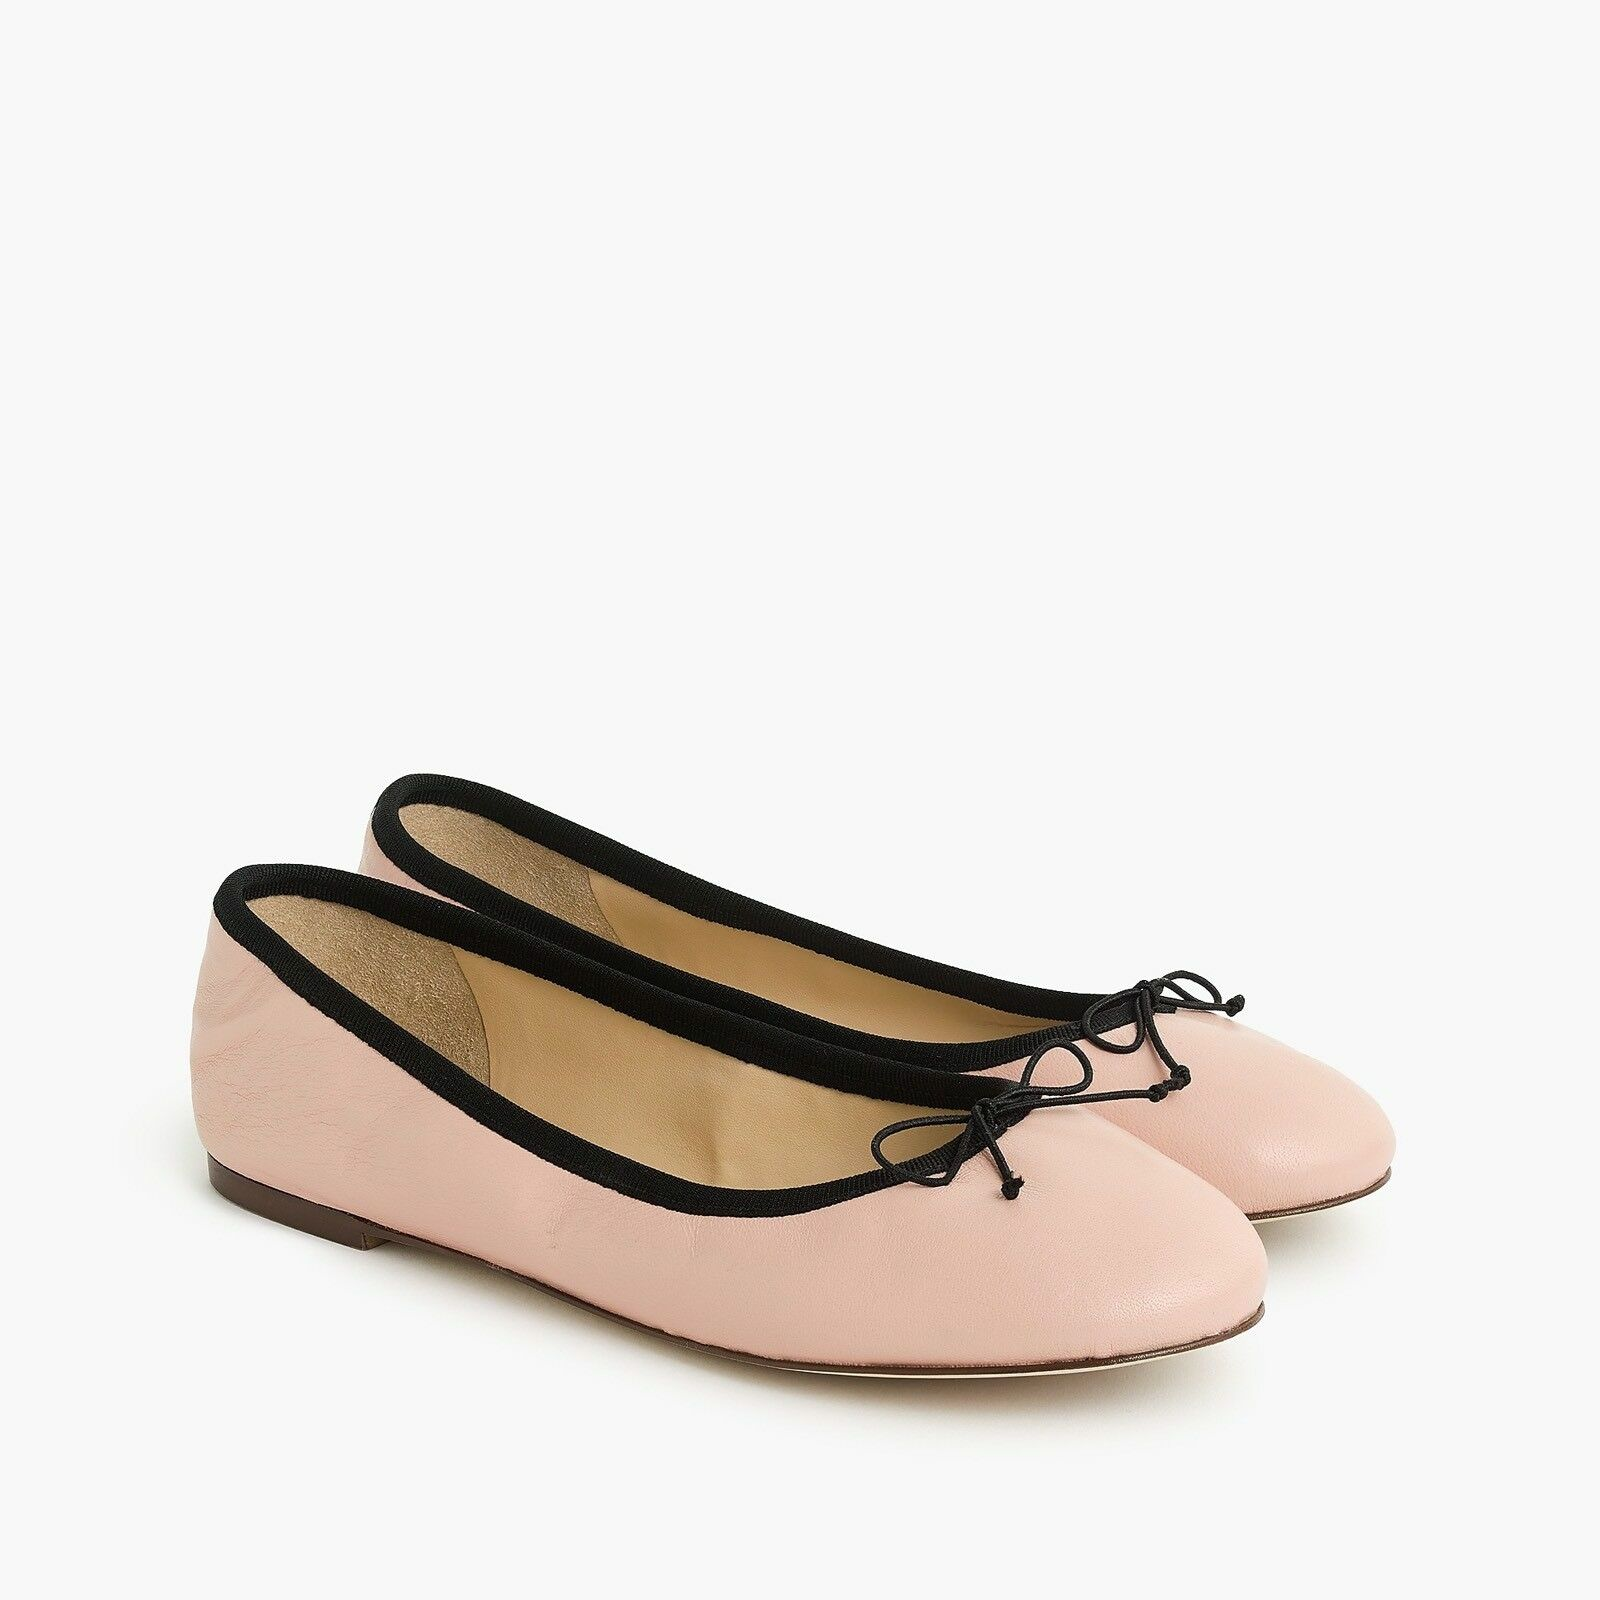 98 NEW J.Crew Evie Classic Leather Bow Ballet Flats Iced Peach   bluesh Sz 9.5